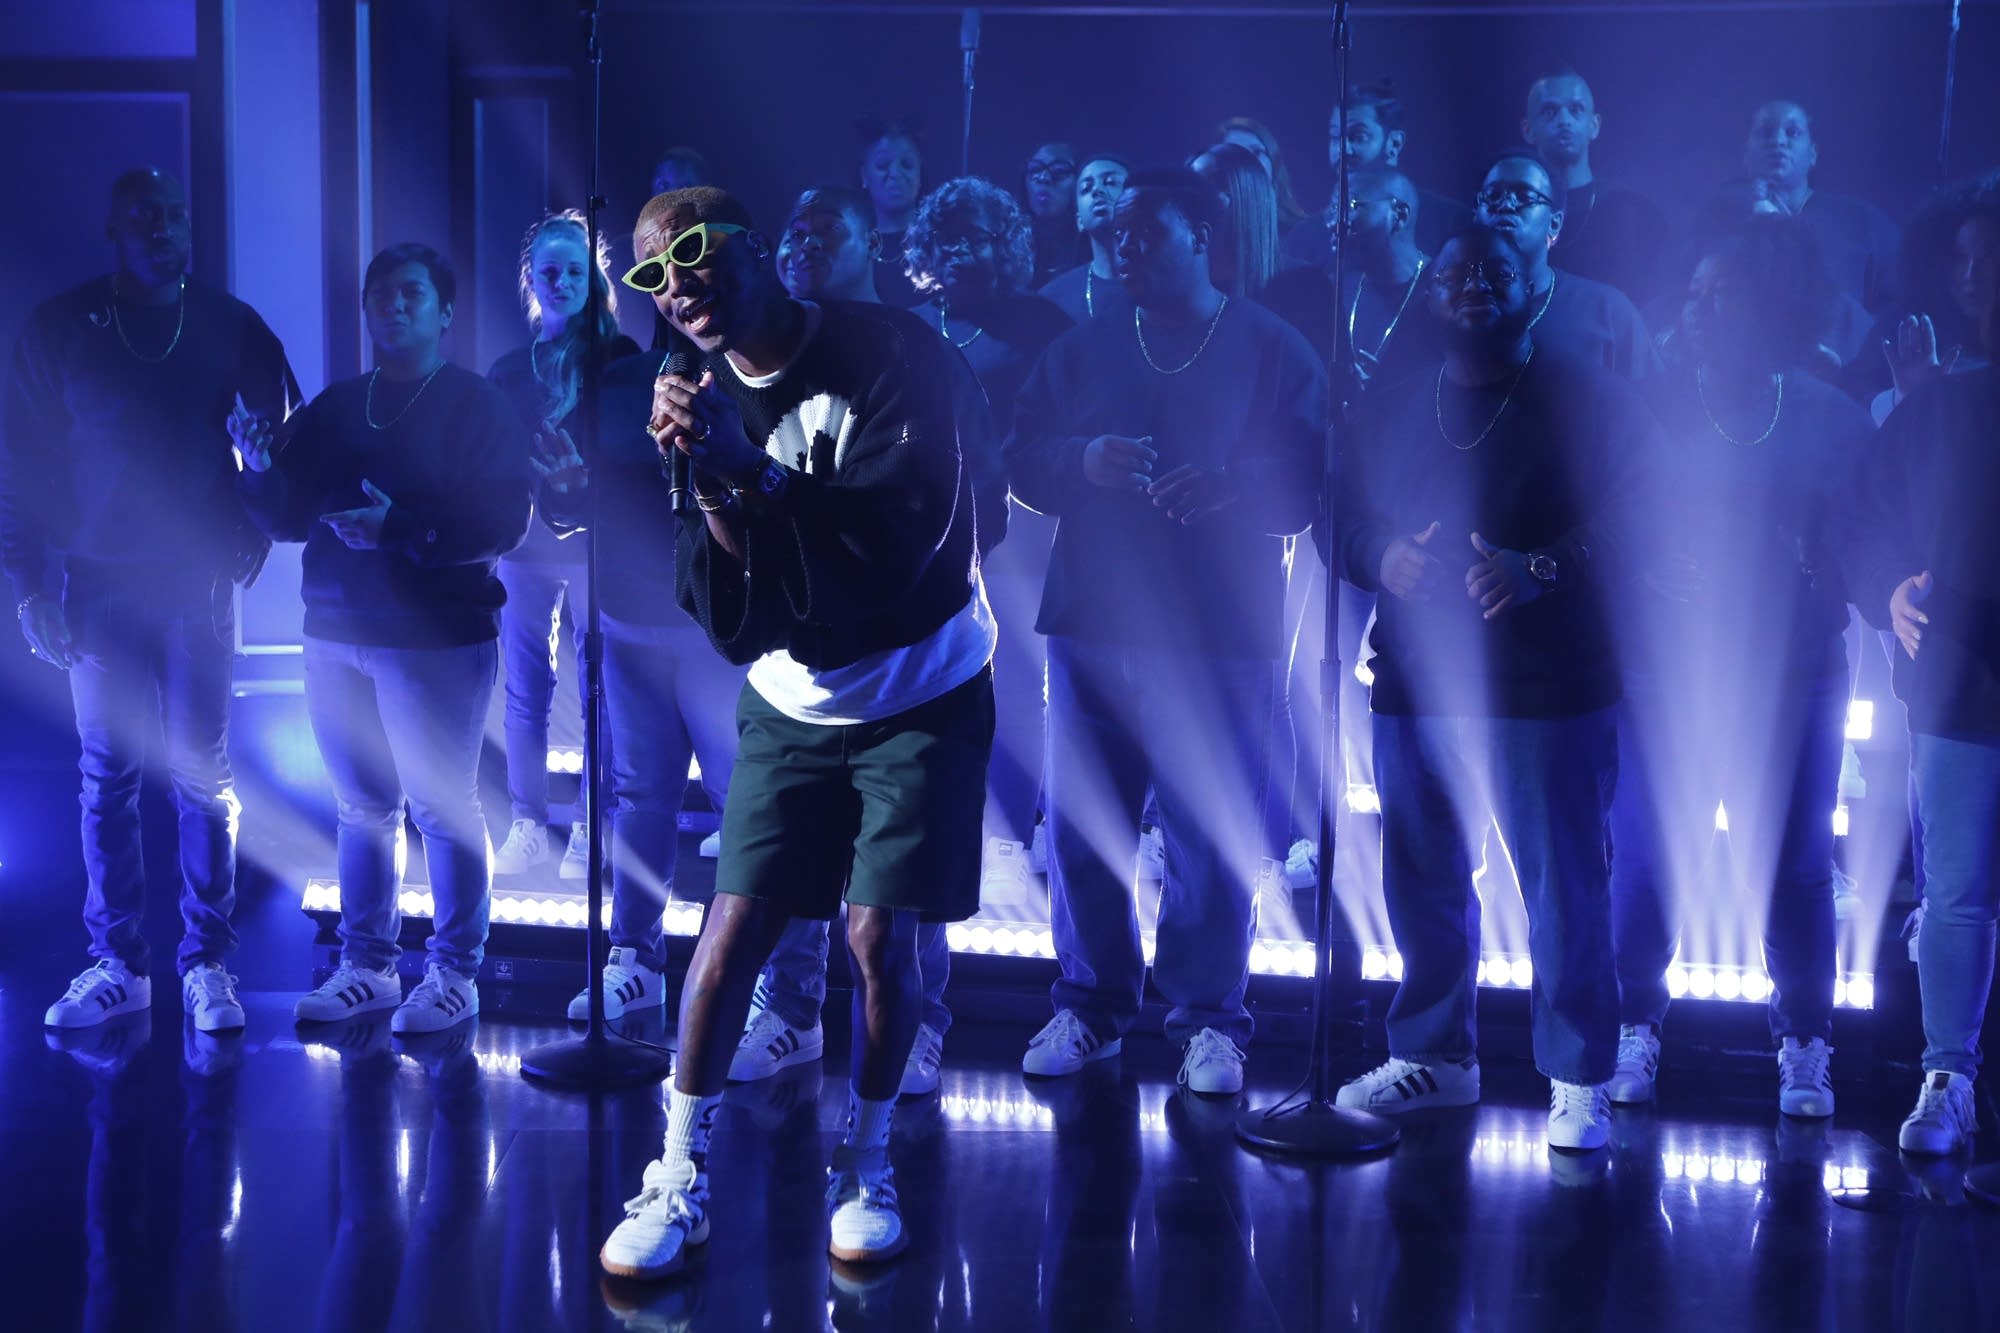 Pharrell Williams on 'Jimmy Kimmel Live!' on ABC